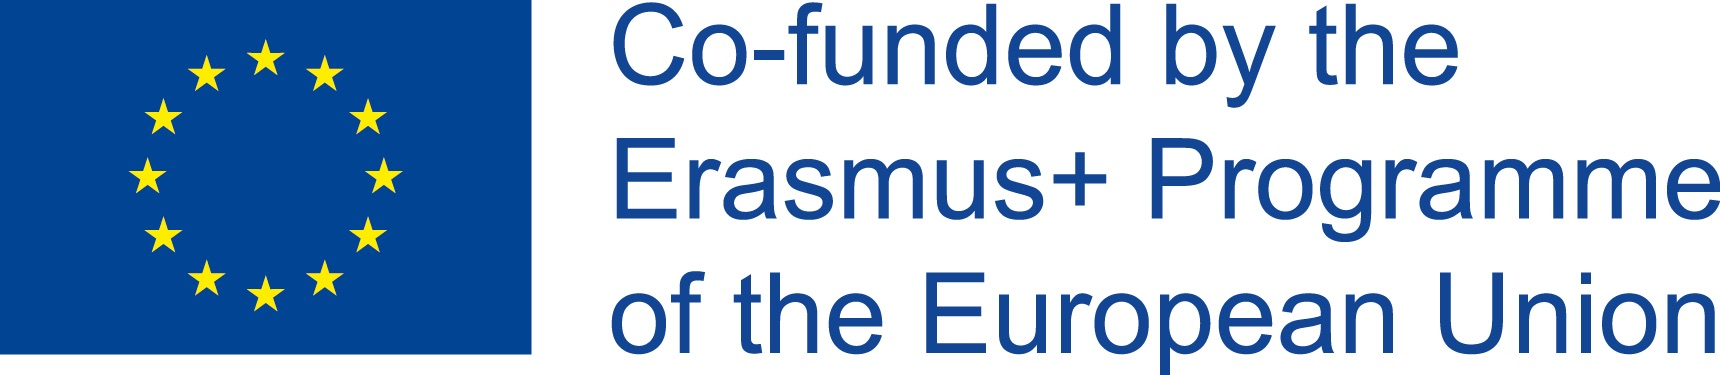 Co-financed by the ERASMUS+ Programme of the European Union